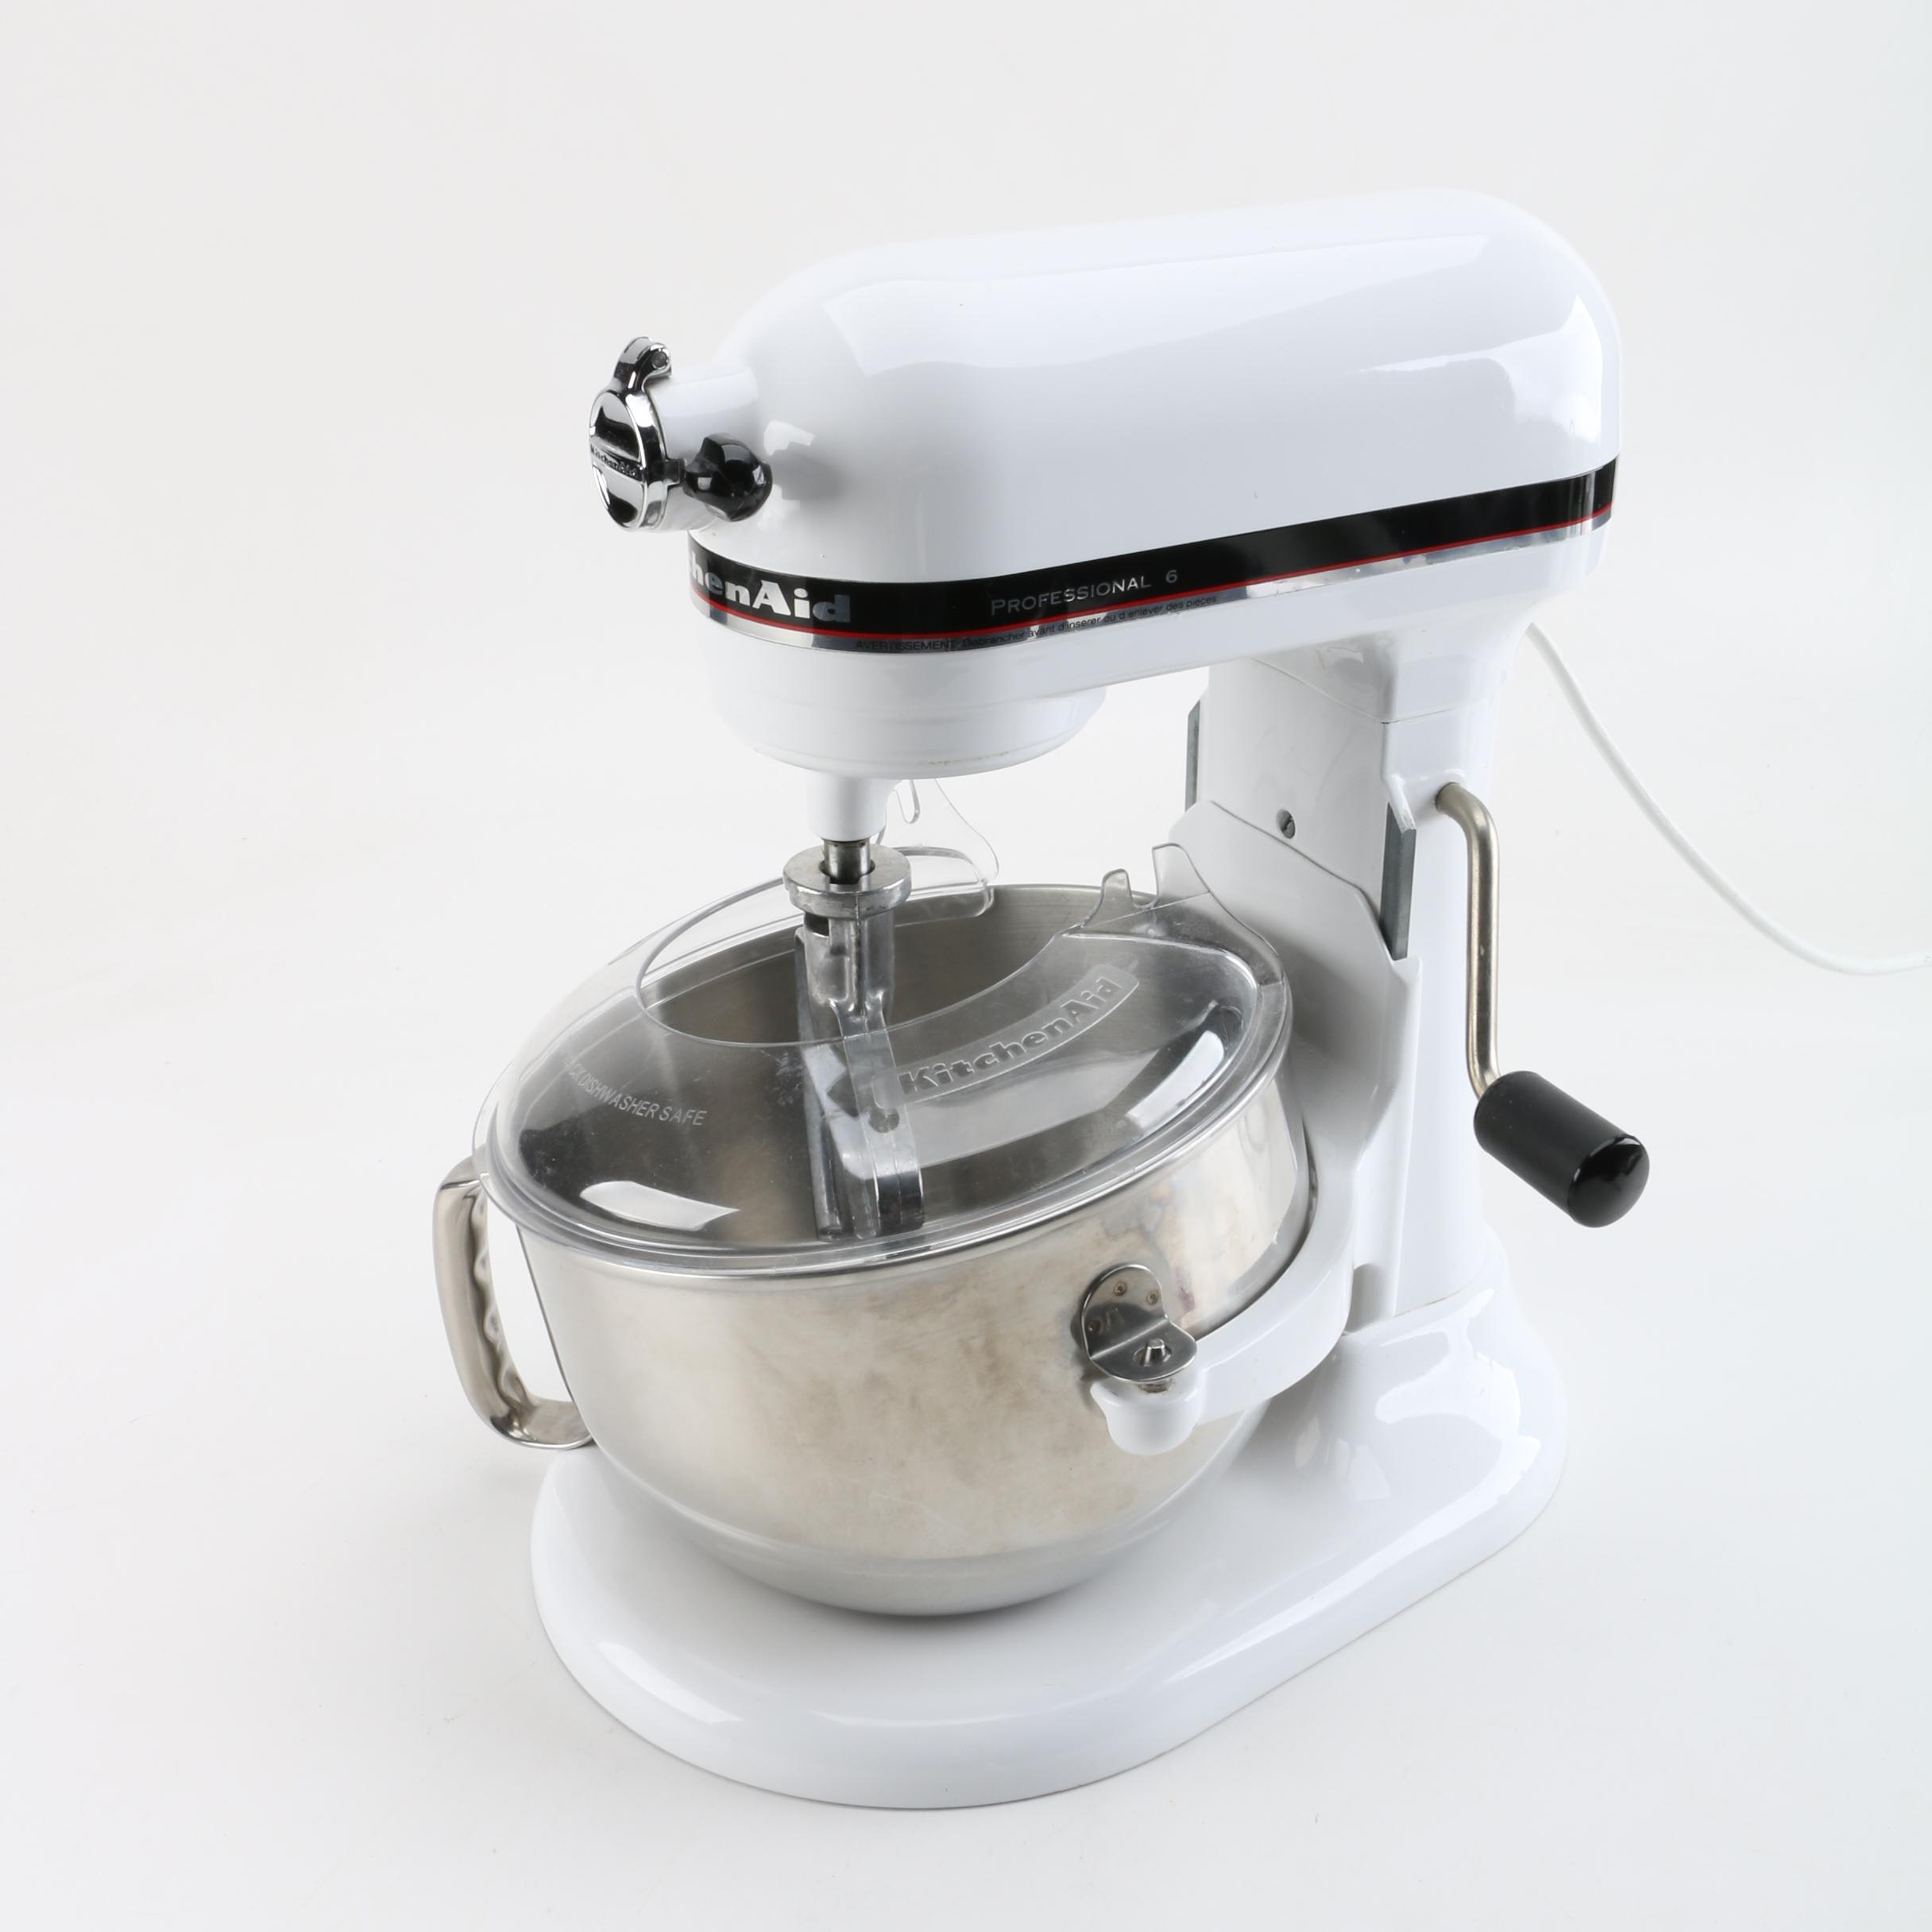 KitchenAid Professional 6 Countertop Mixer